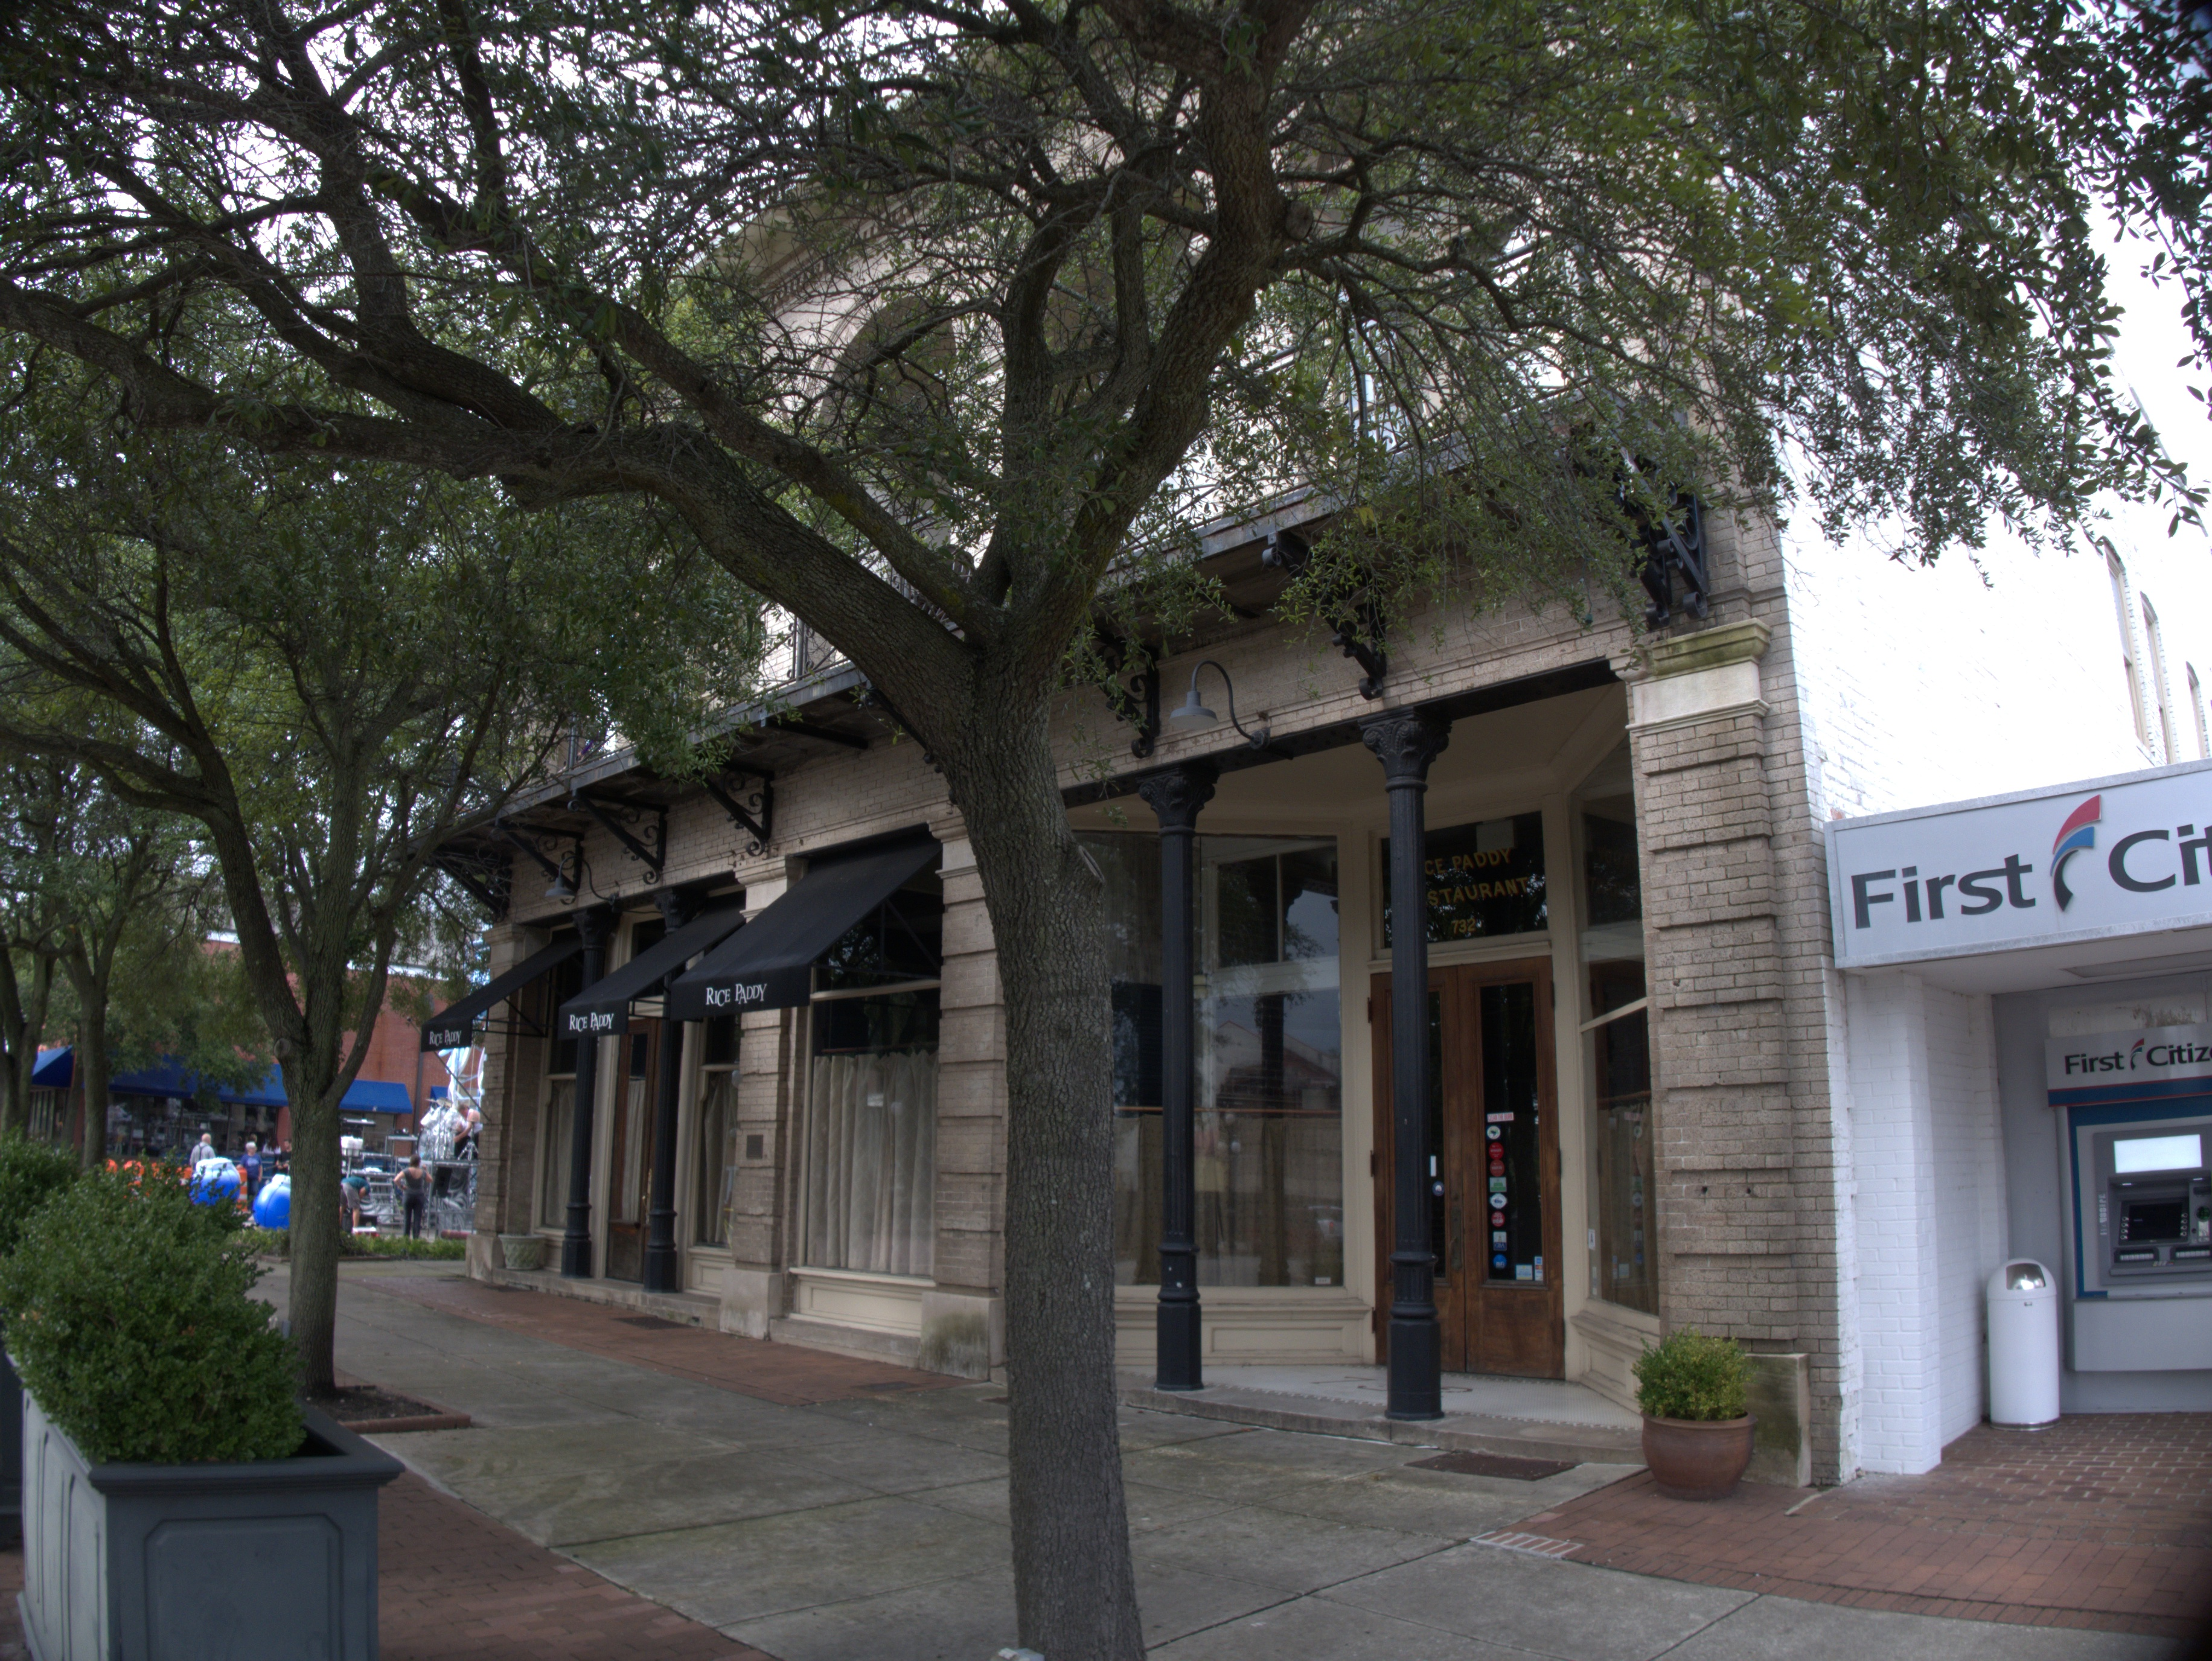 I Was In Downtown Georgetown A Few Weeks Ago Having Taken Refrigerator Part To The Very Far Edge Of Town And Looking Eat Al Fresco On Front Street